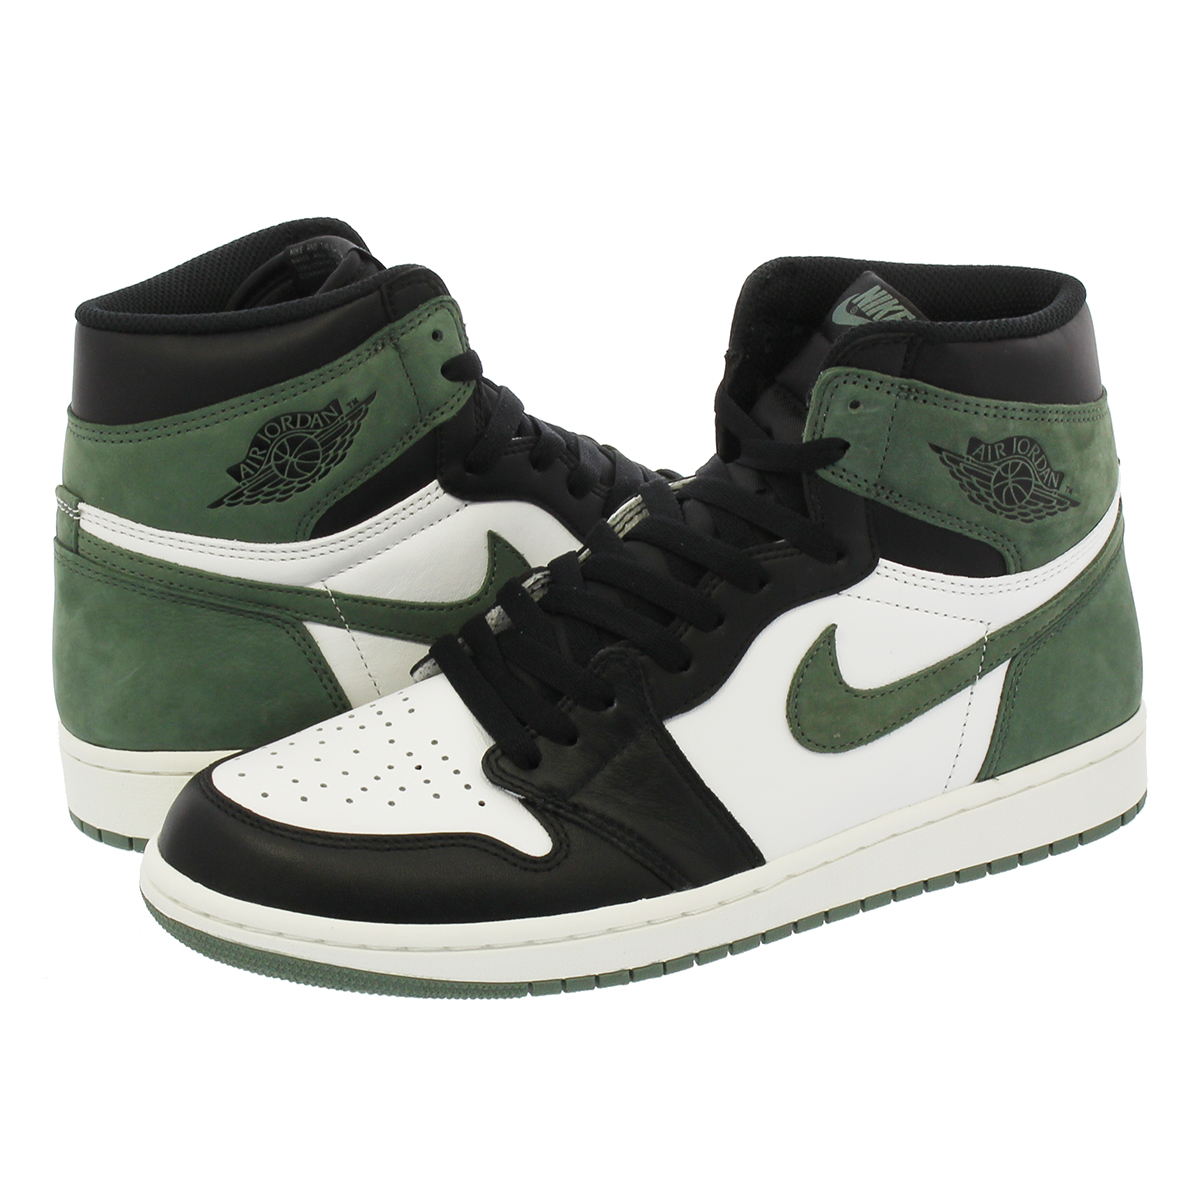 c252c9fb4e7c18 NIKE AIR JORDAN 1 RETRO HIGH OG Nike Air Jordan 1 nostalgic high OG WHITE  BLACK CLAY GREEN